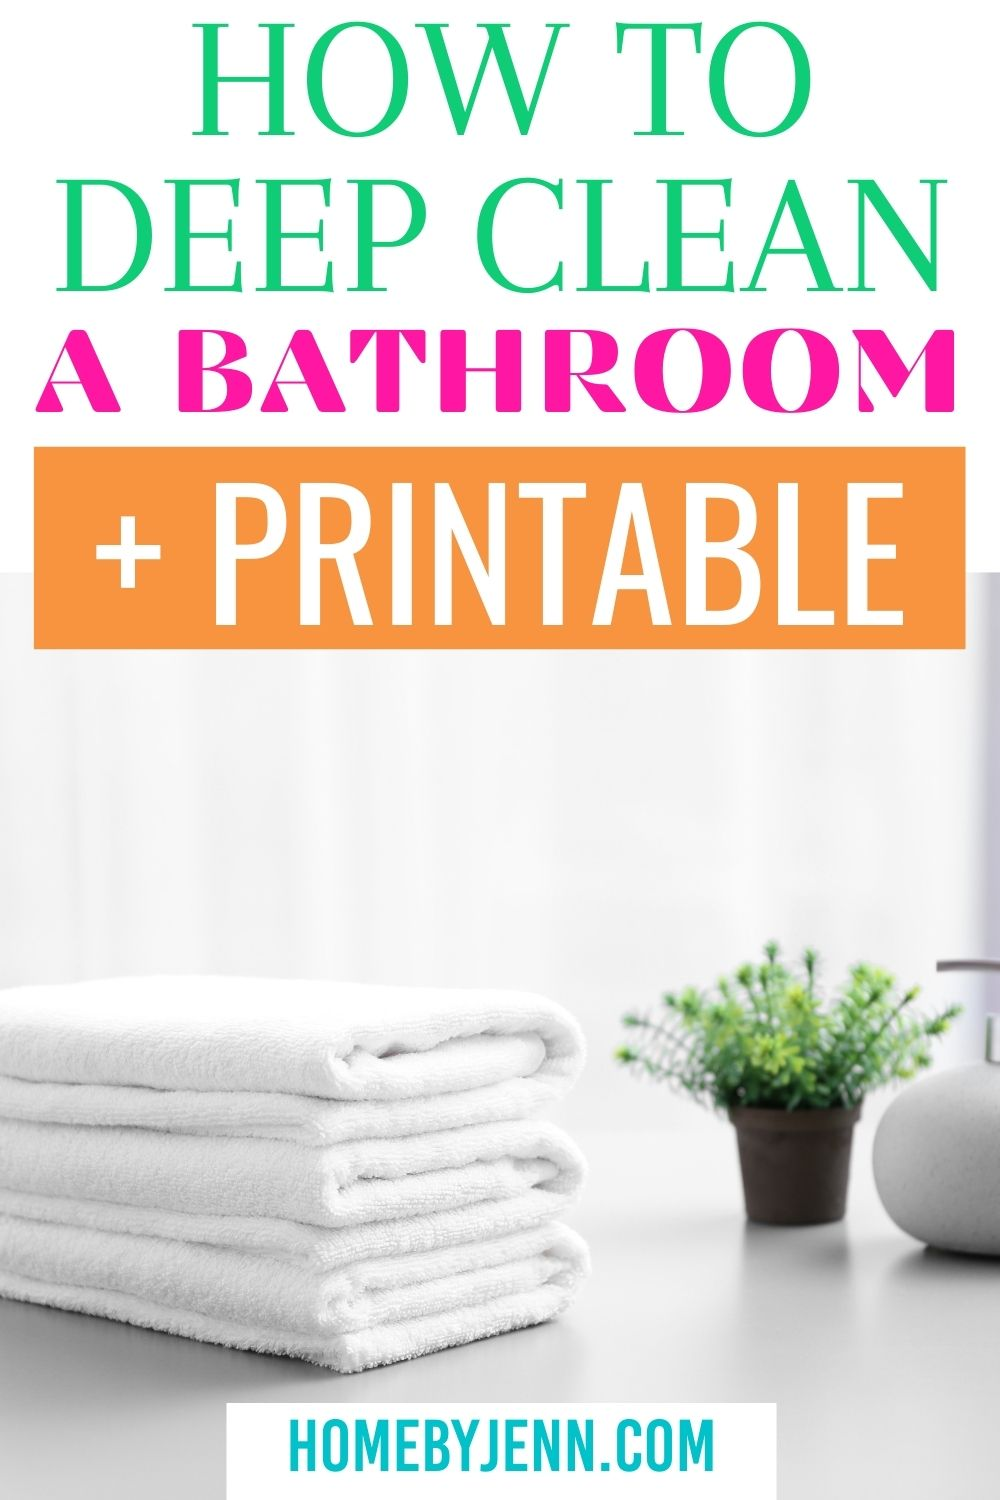 Learn how to deep clean a bathroom plus download the free bathroom cleaning checklist. I'll walk you through exactly what to do when deep cleaning your bathroom. Follow these simple steps to clean a bathroom fast and efficiently. via @homebyjenn